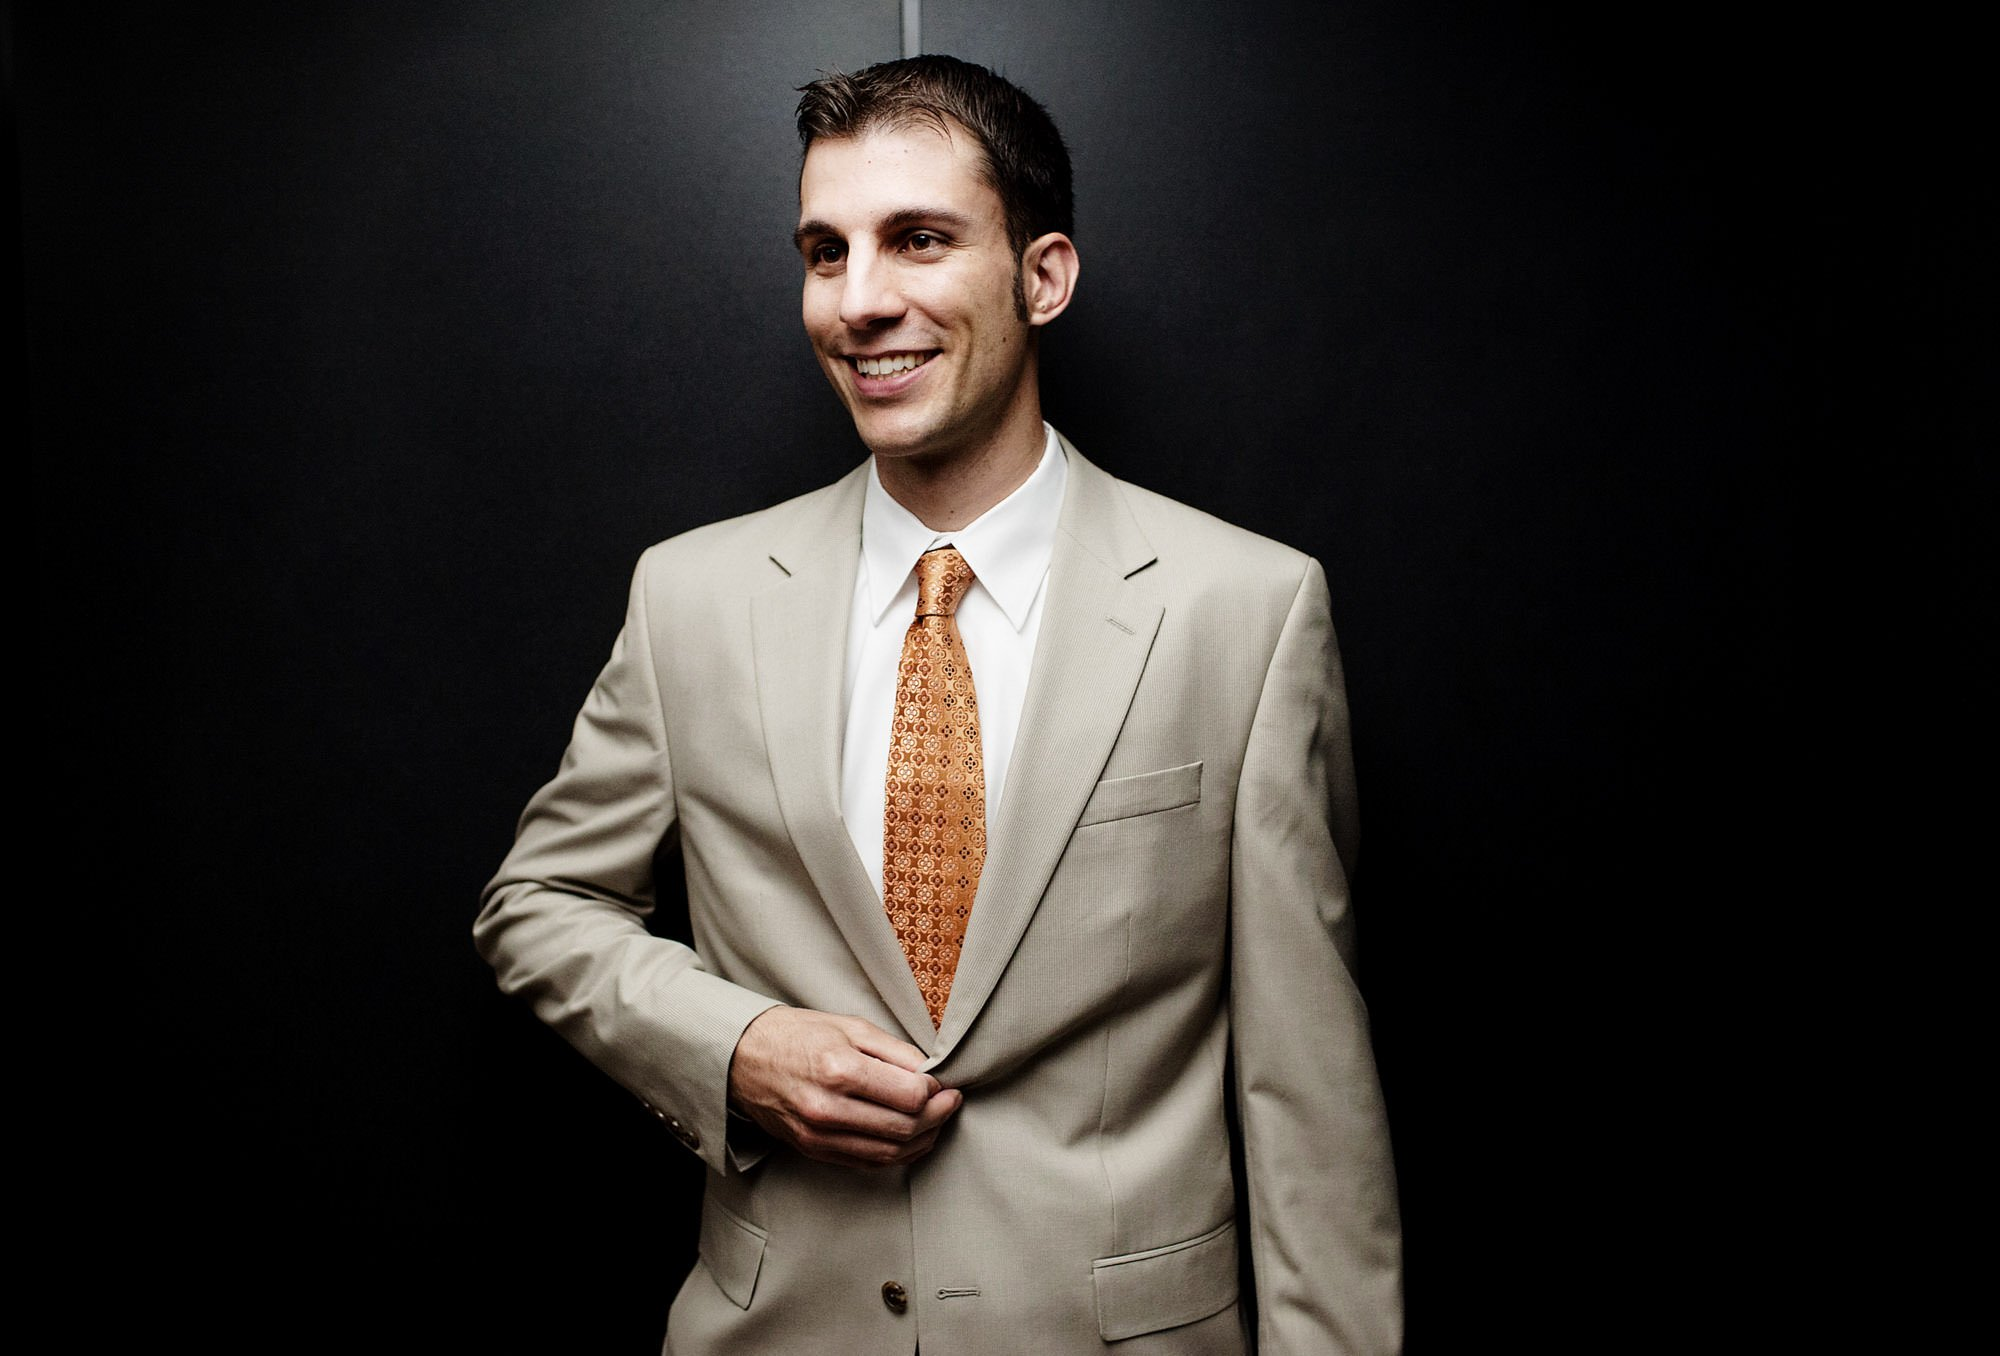 A portrait of the groom in an elevator.